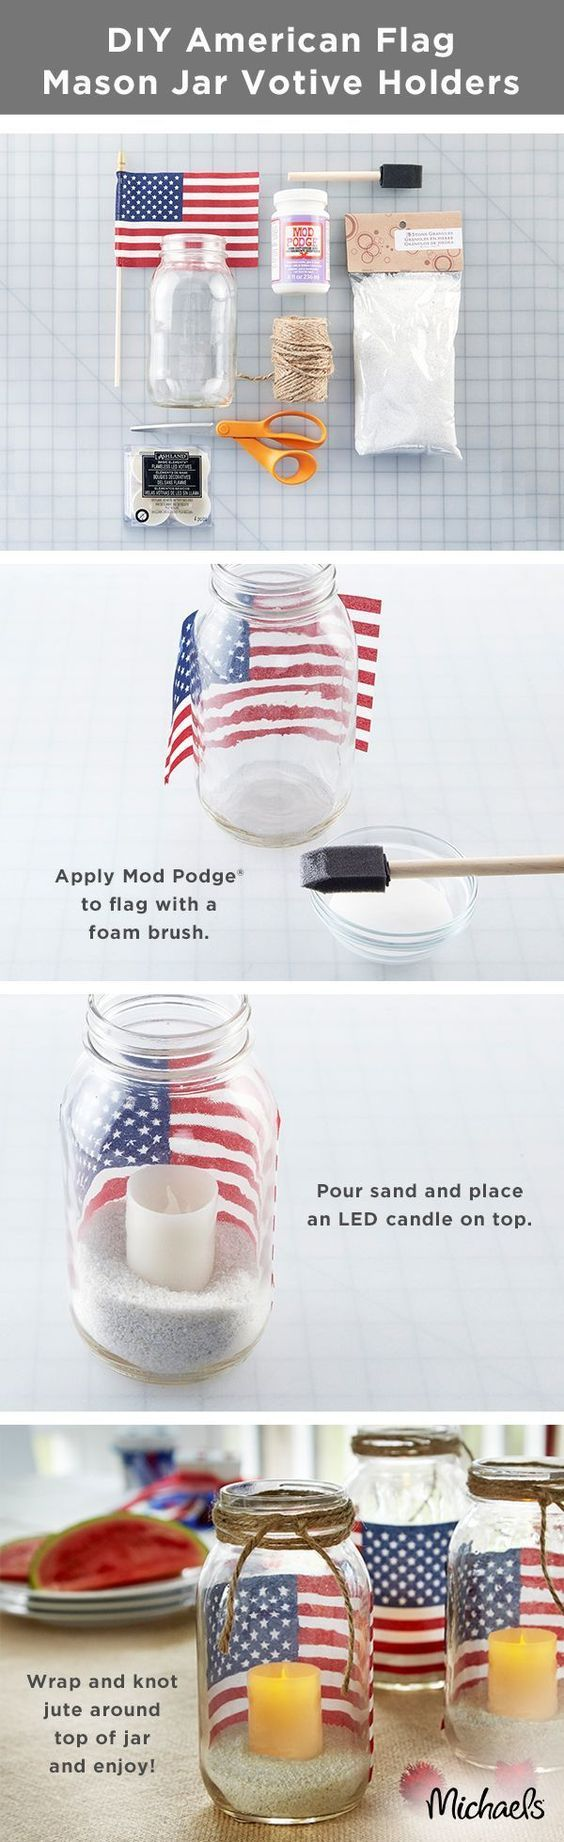 Brighten your home or patio with these patriotic DIY American Flag Mason Jar Votive Holders in just three simple steps. First apply the adhesive to the flag with a foam brush and adhere to the jar. Then pour in the sand and place an LED candle on top. Finally, wrap and knot jute around the top of the jar and enjoy! They are the perfect decoration for a backyard BBQ or a summer dinner at home.